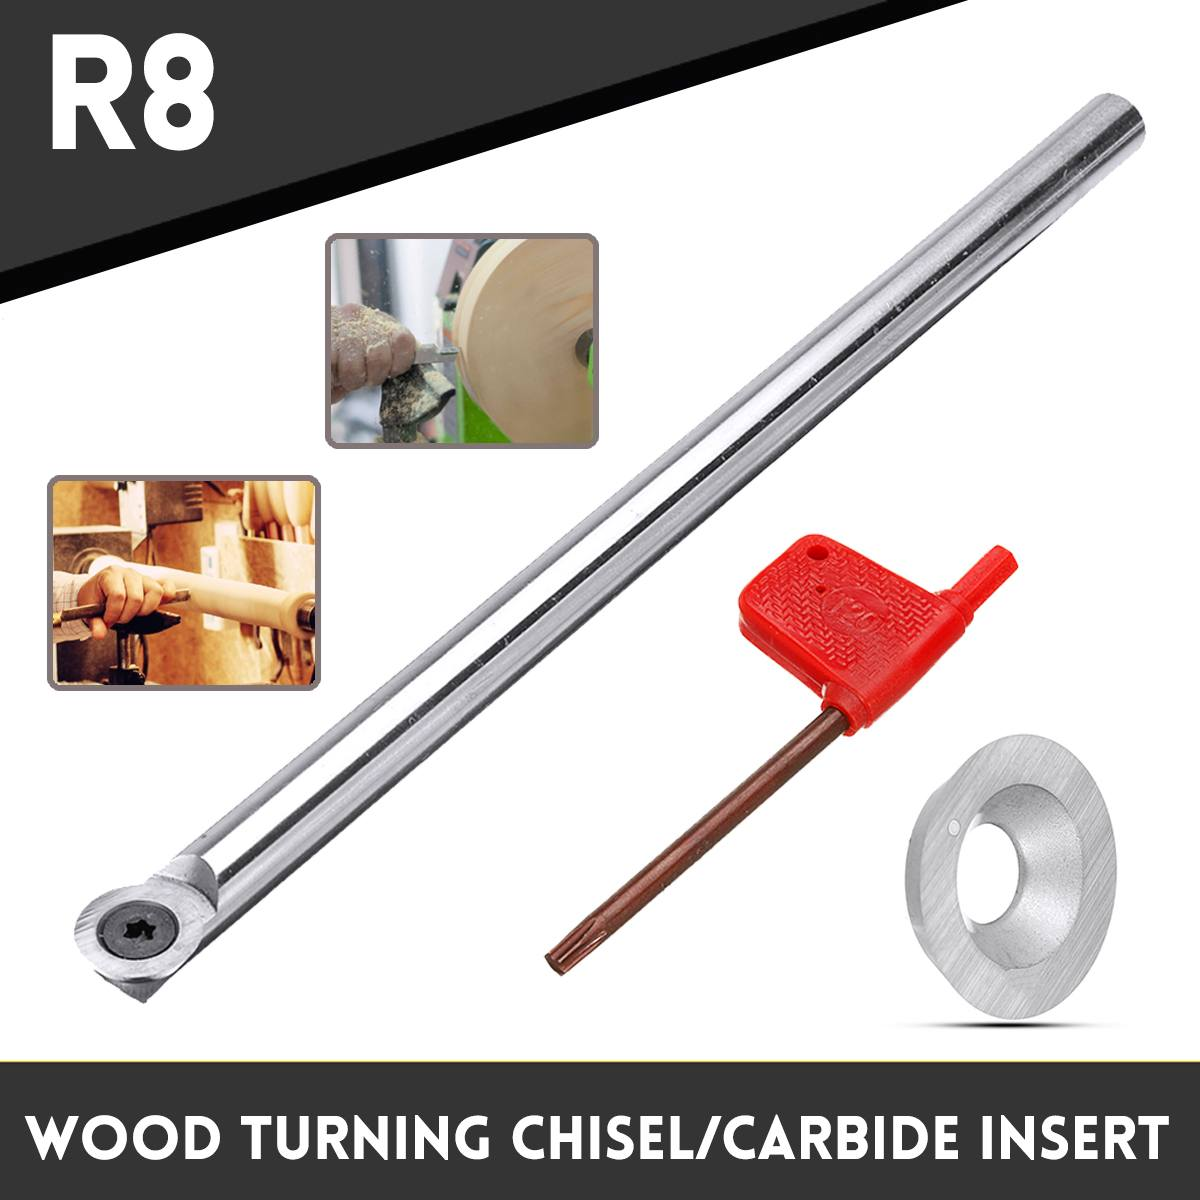 R8 Round Lathe Wood Turning Chisel Tool Insert Cutter With Wrench Or Carbide Insert Woodworking Tool